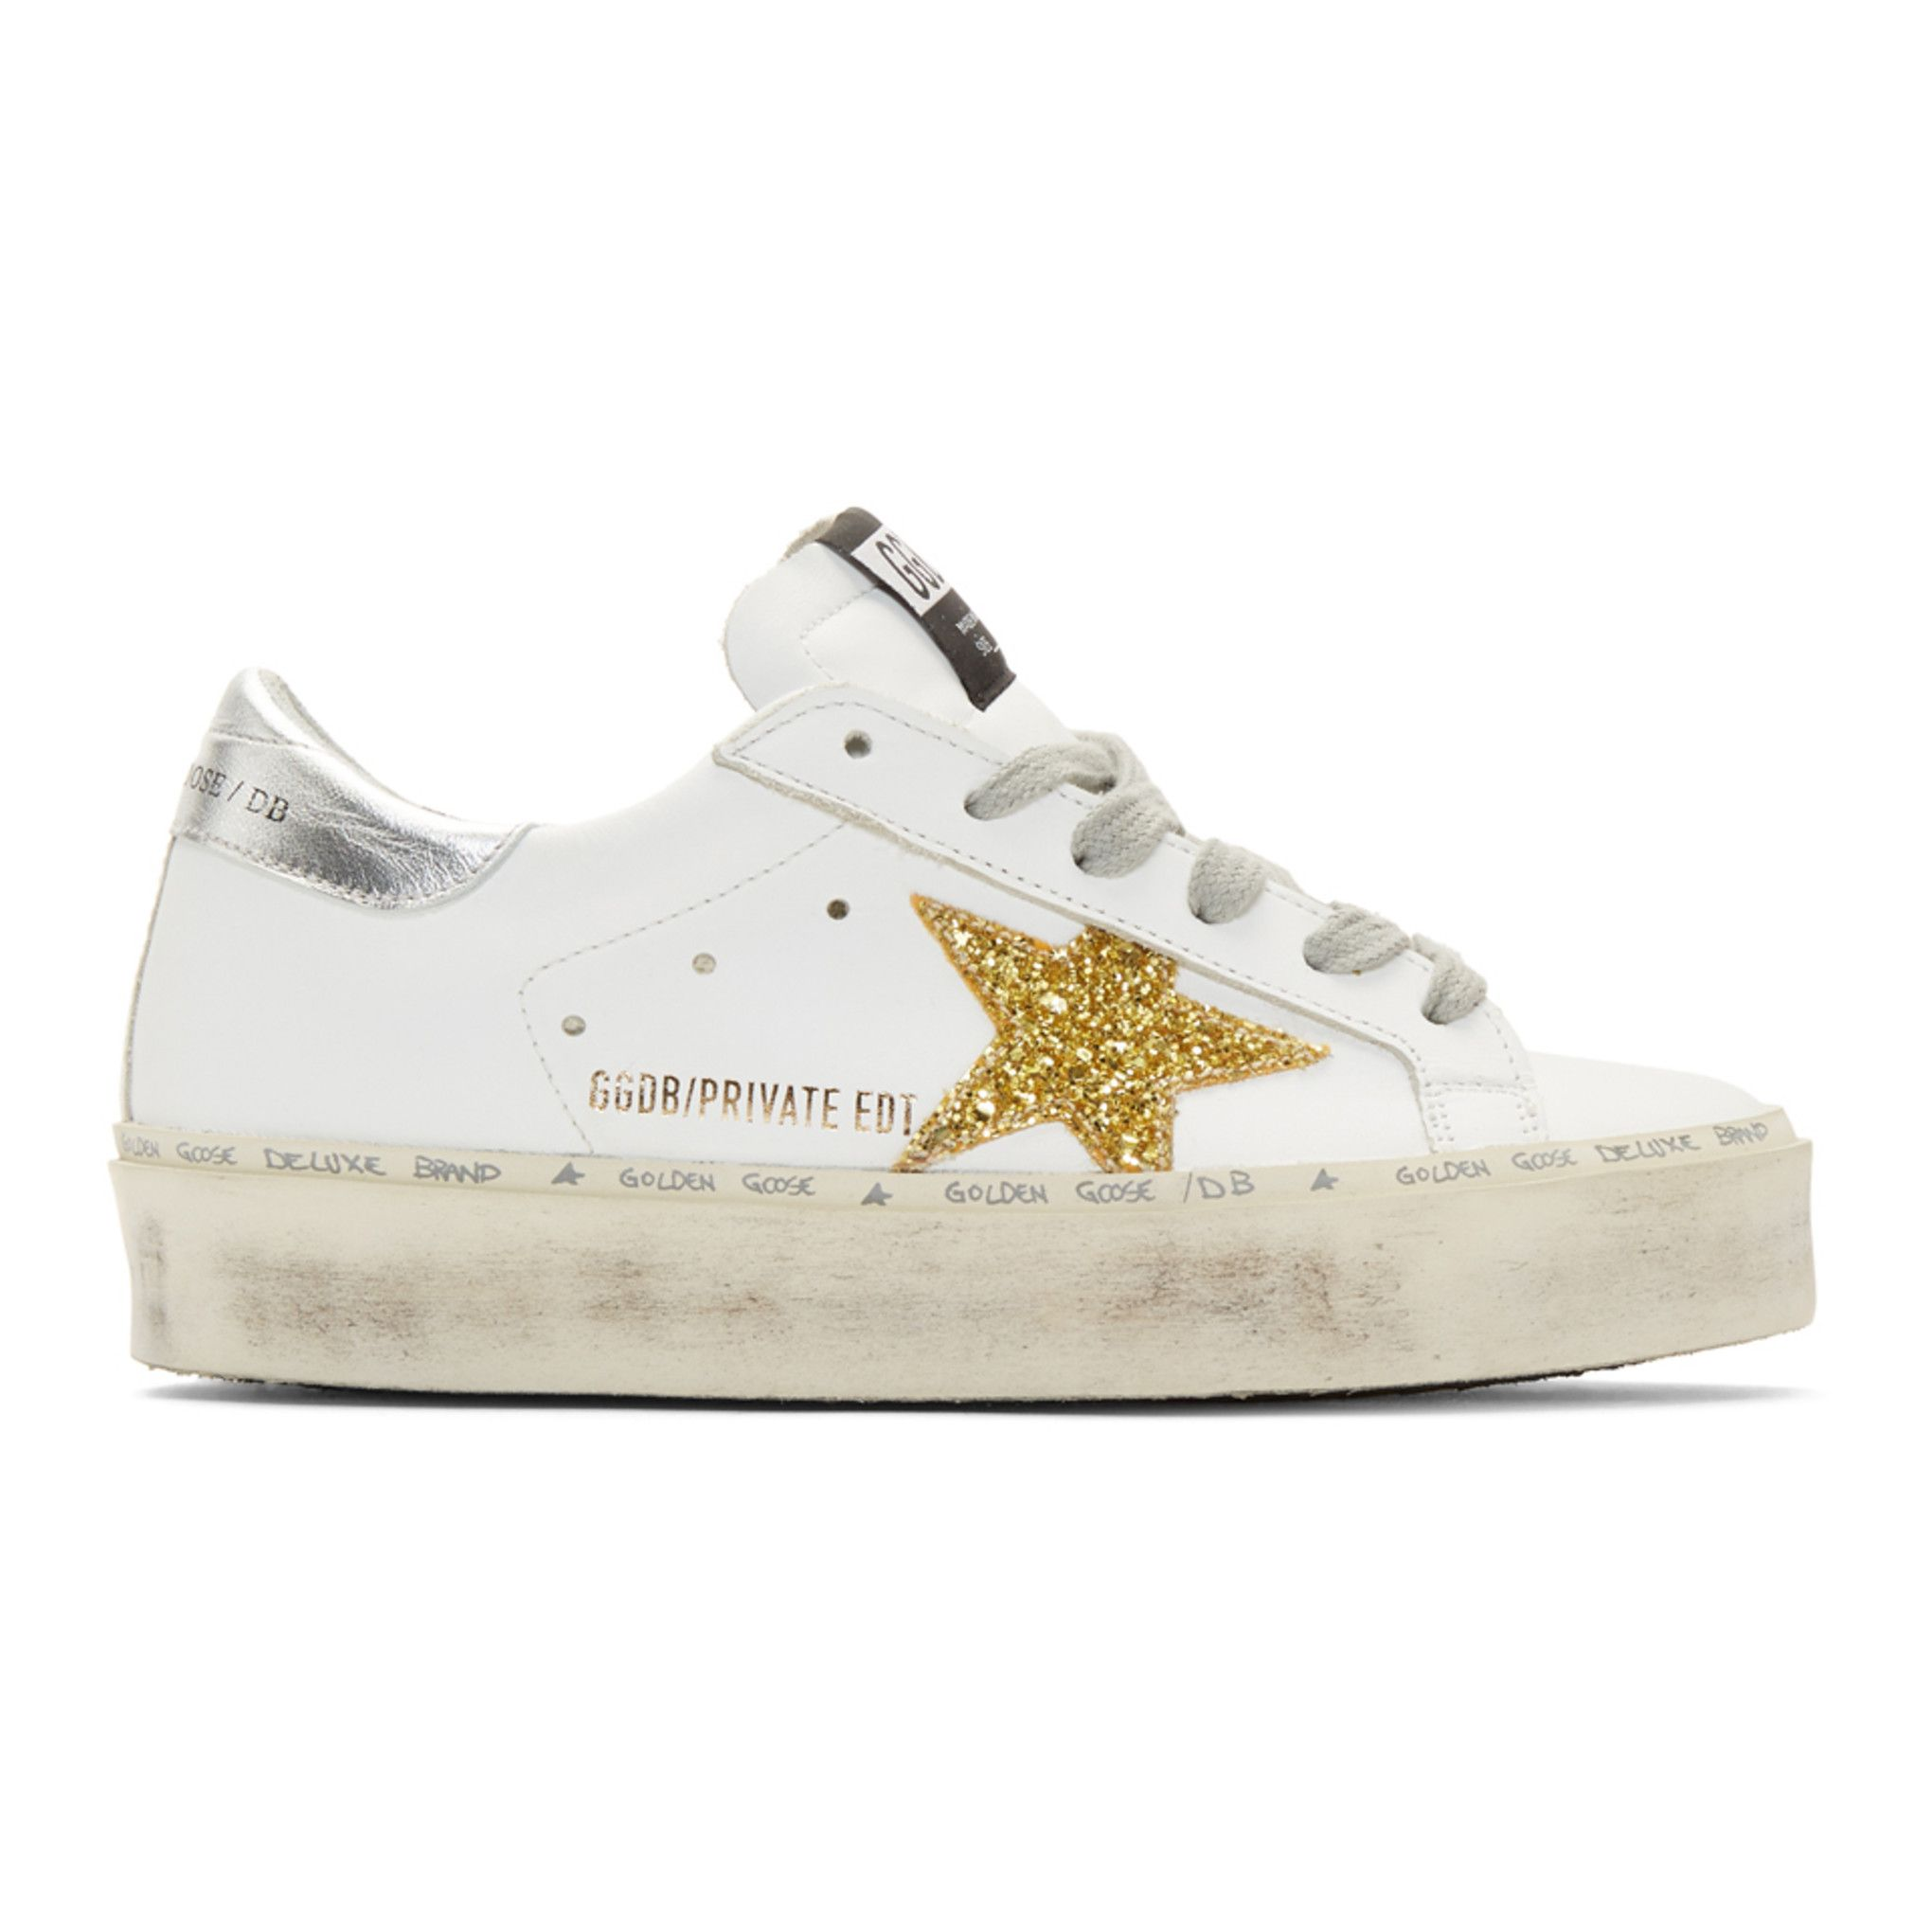 Golden goose shoes, Star sneakers